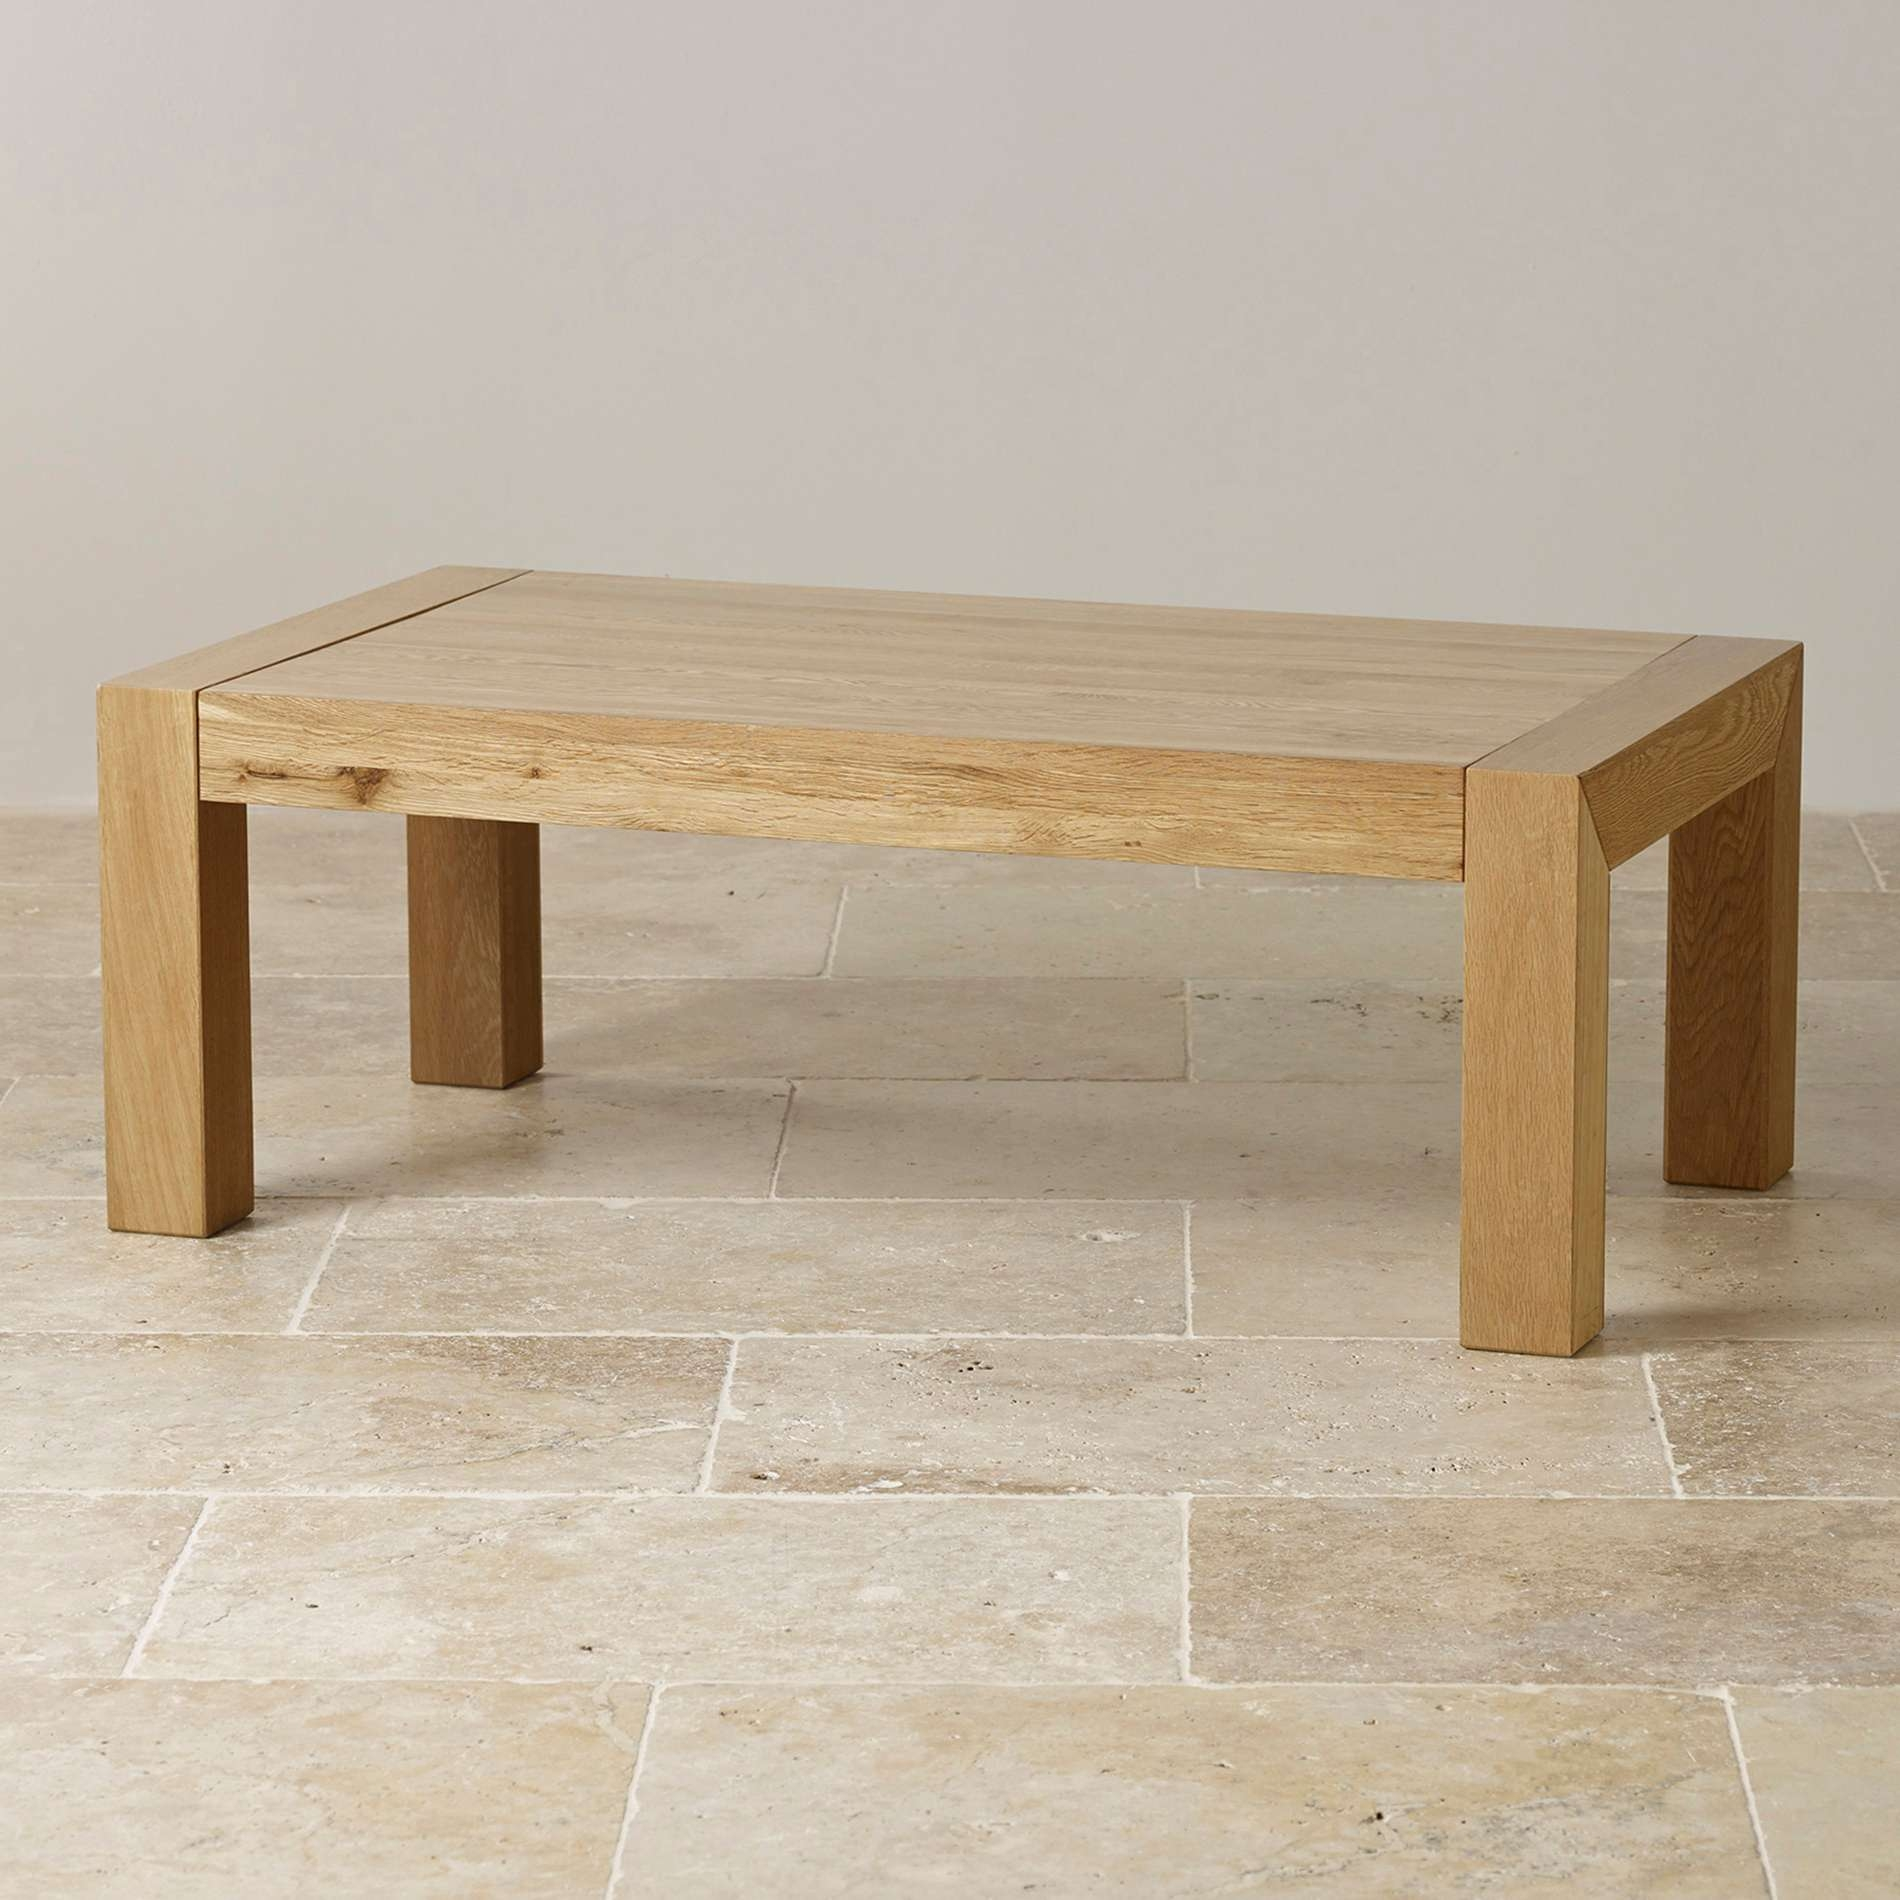 Well Known Large Oak Coffee Tables With Coffee Table : Wonderful Solid Wood Coffee Table With Drawers (View 5 of 20)